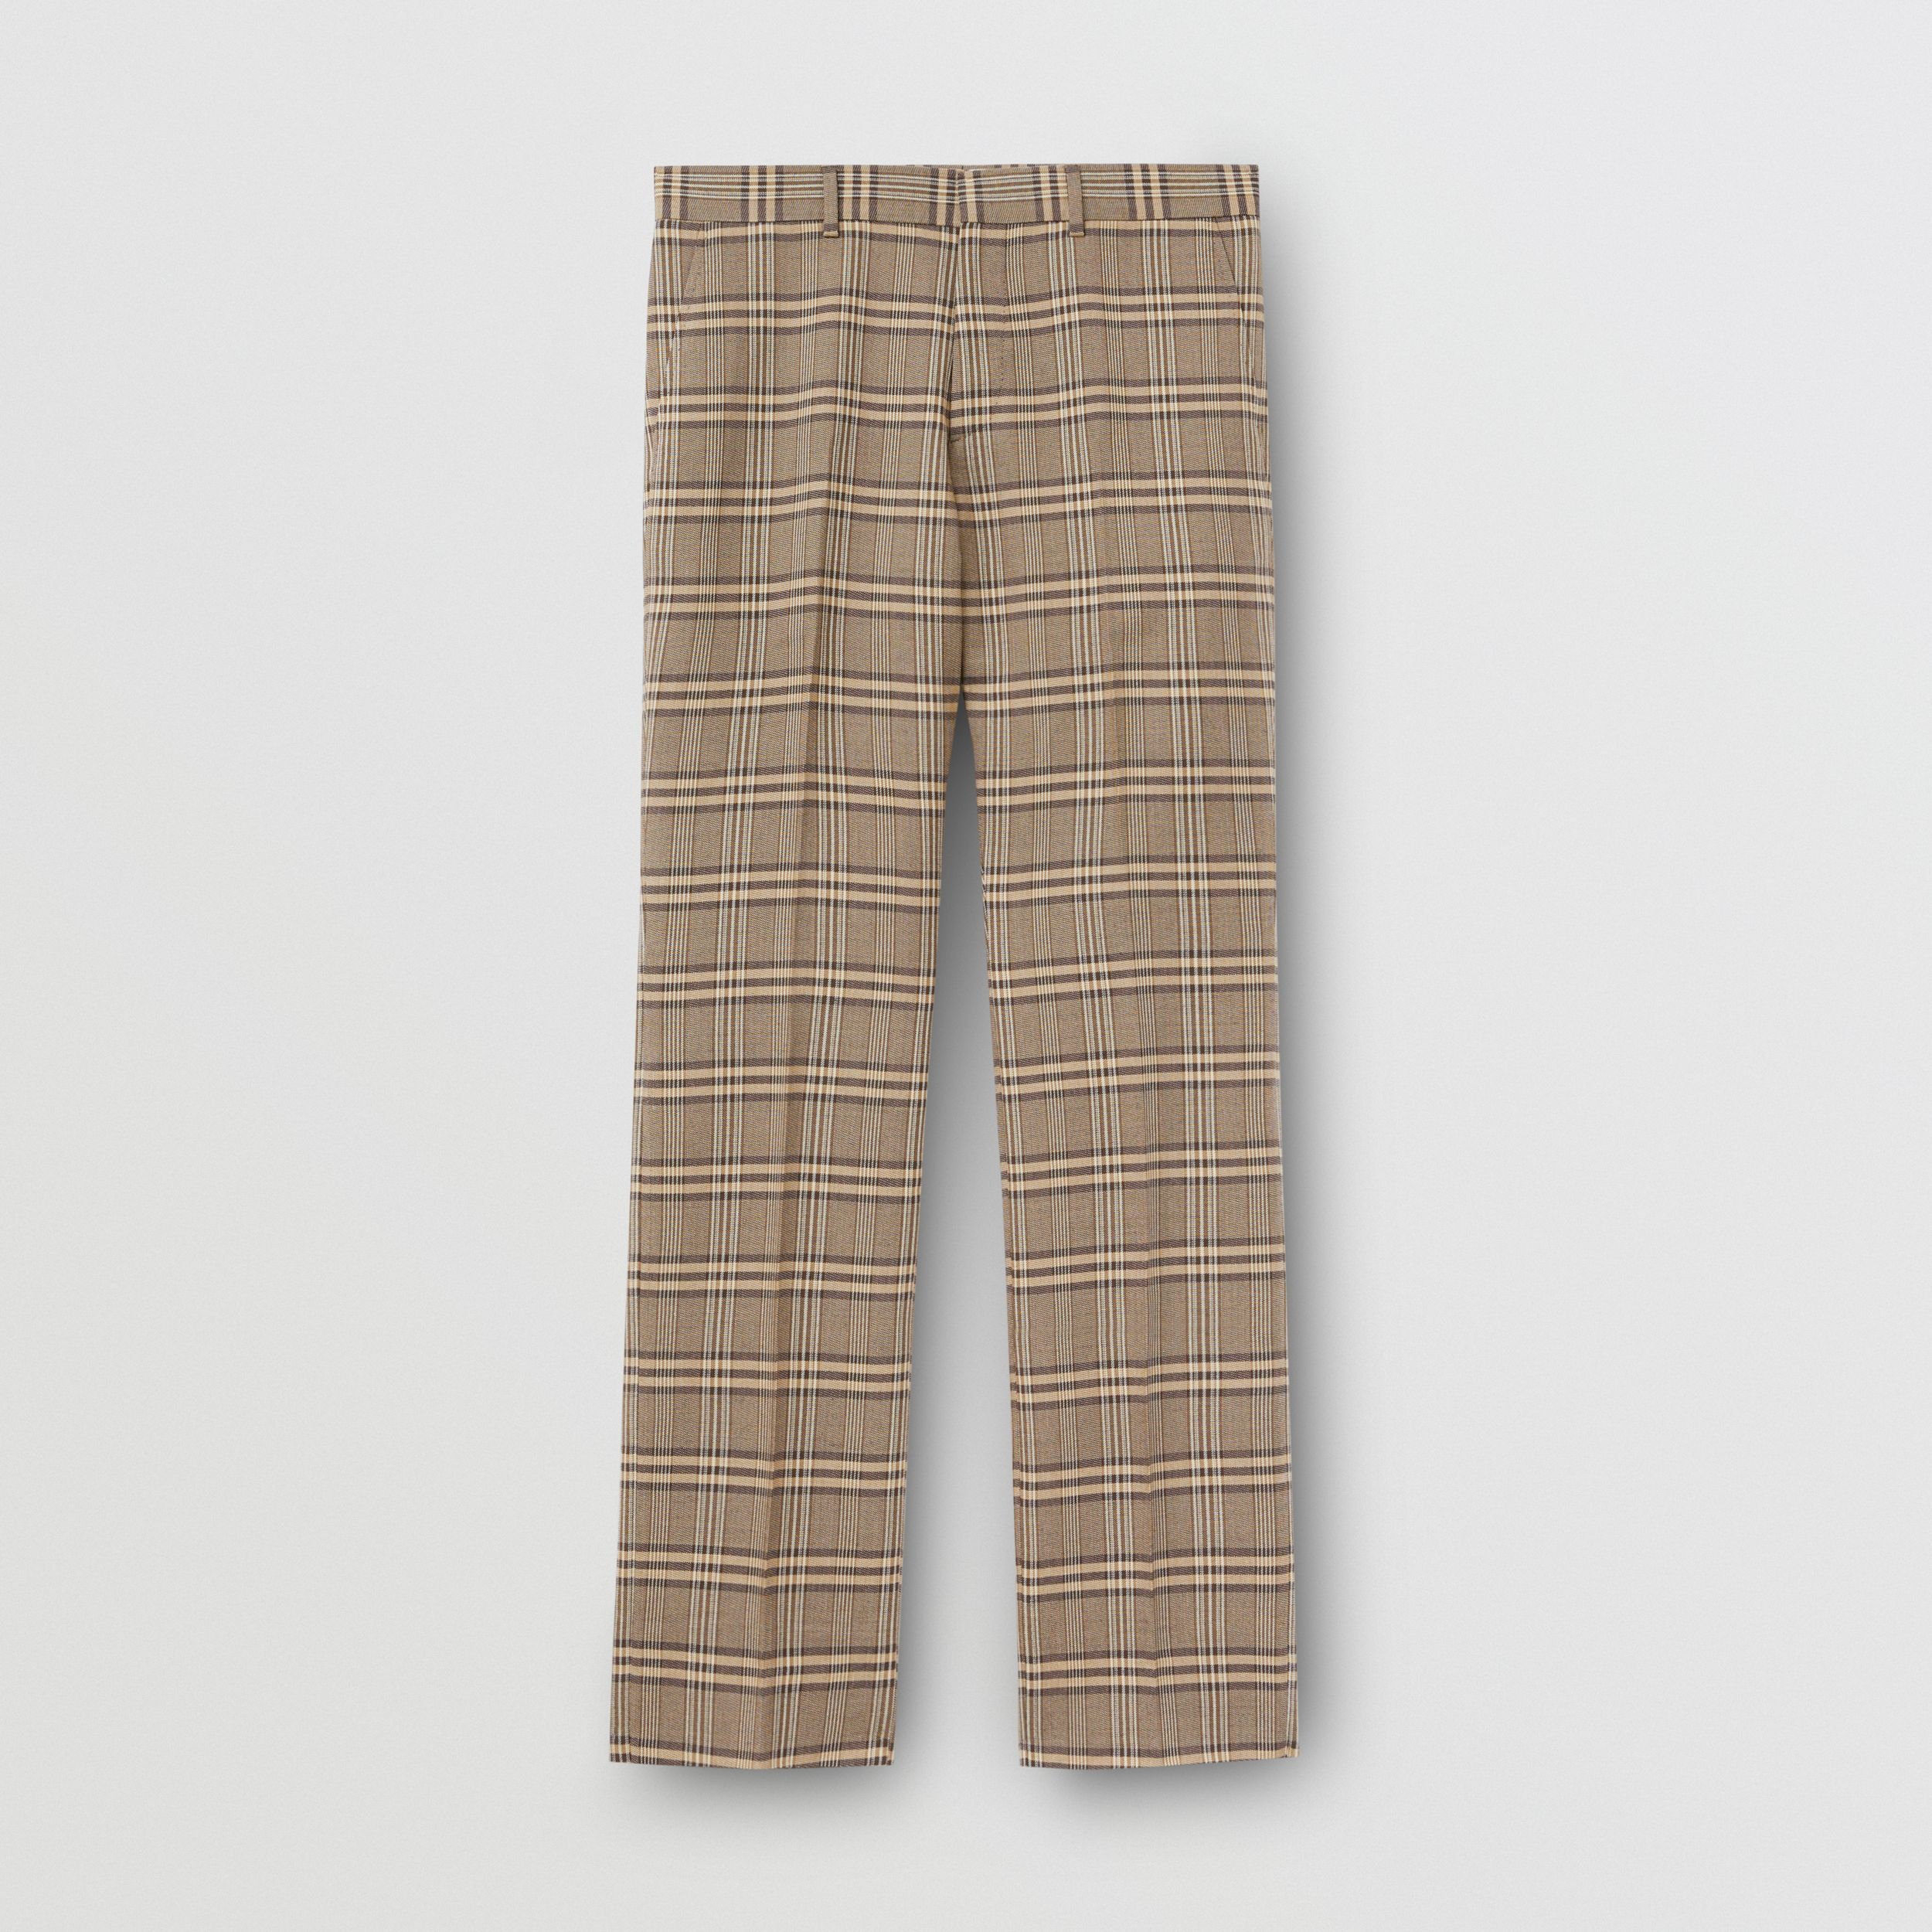 Prince of Wales Check Wool Silk Tailored Trousers in Dusty Caramel | Burberry Australia - 4